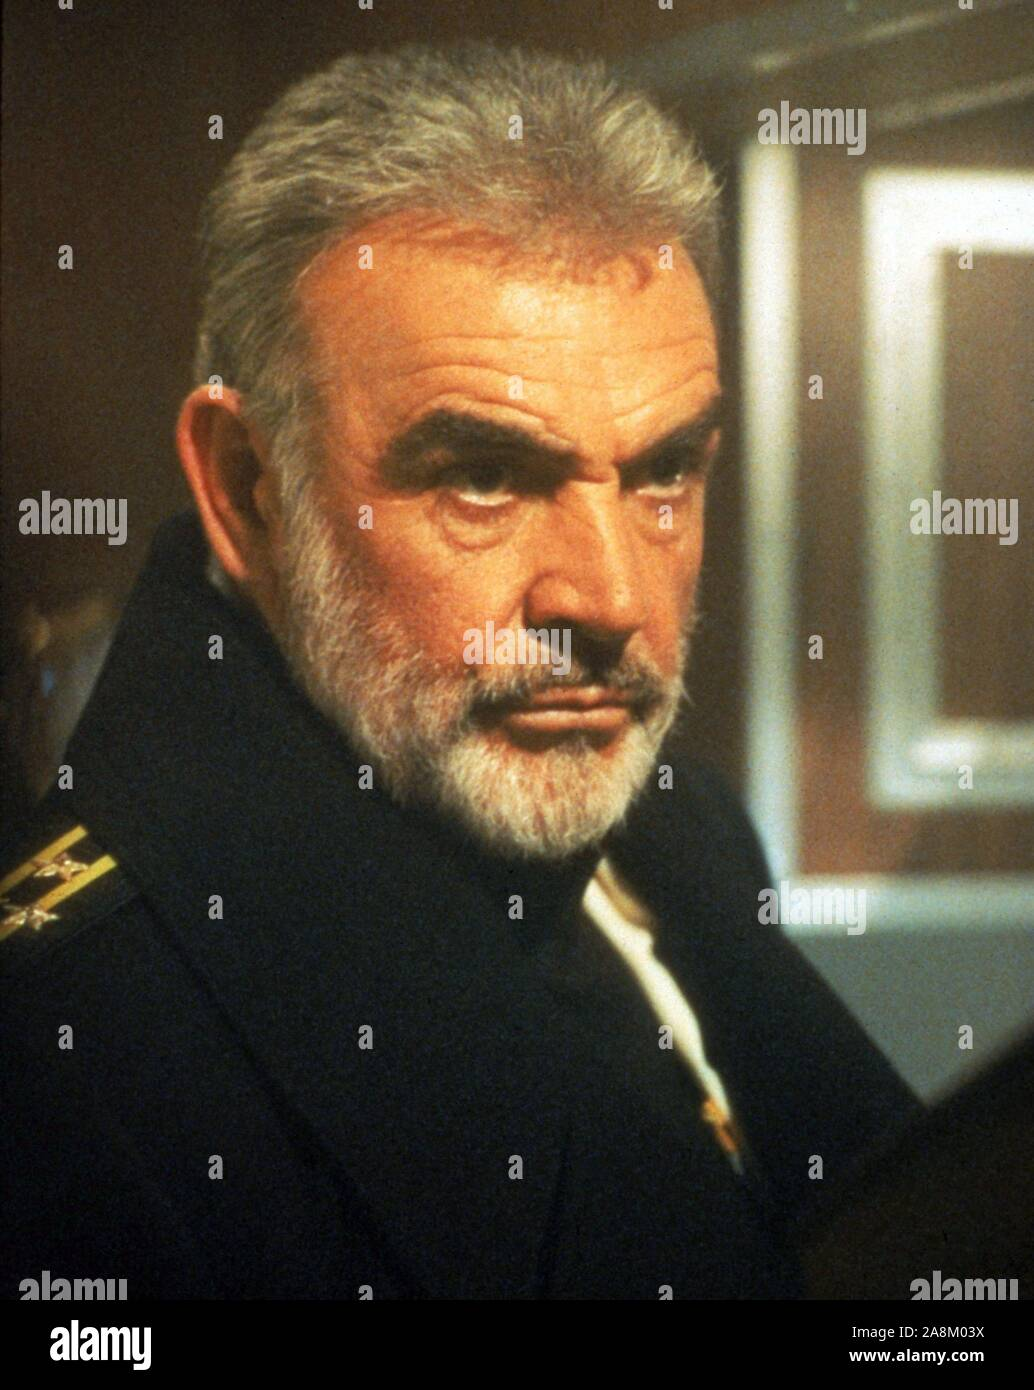 Sean Connery In The Hunt For Red October 1990 Directed By John Mctiernan Credit Paramount Pictures Album Stock Photo Alamy